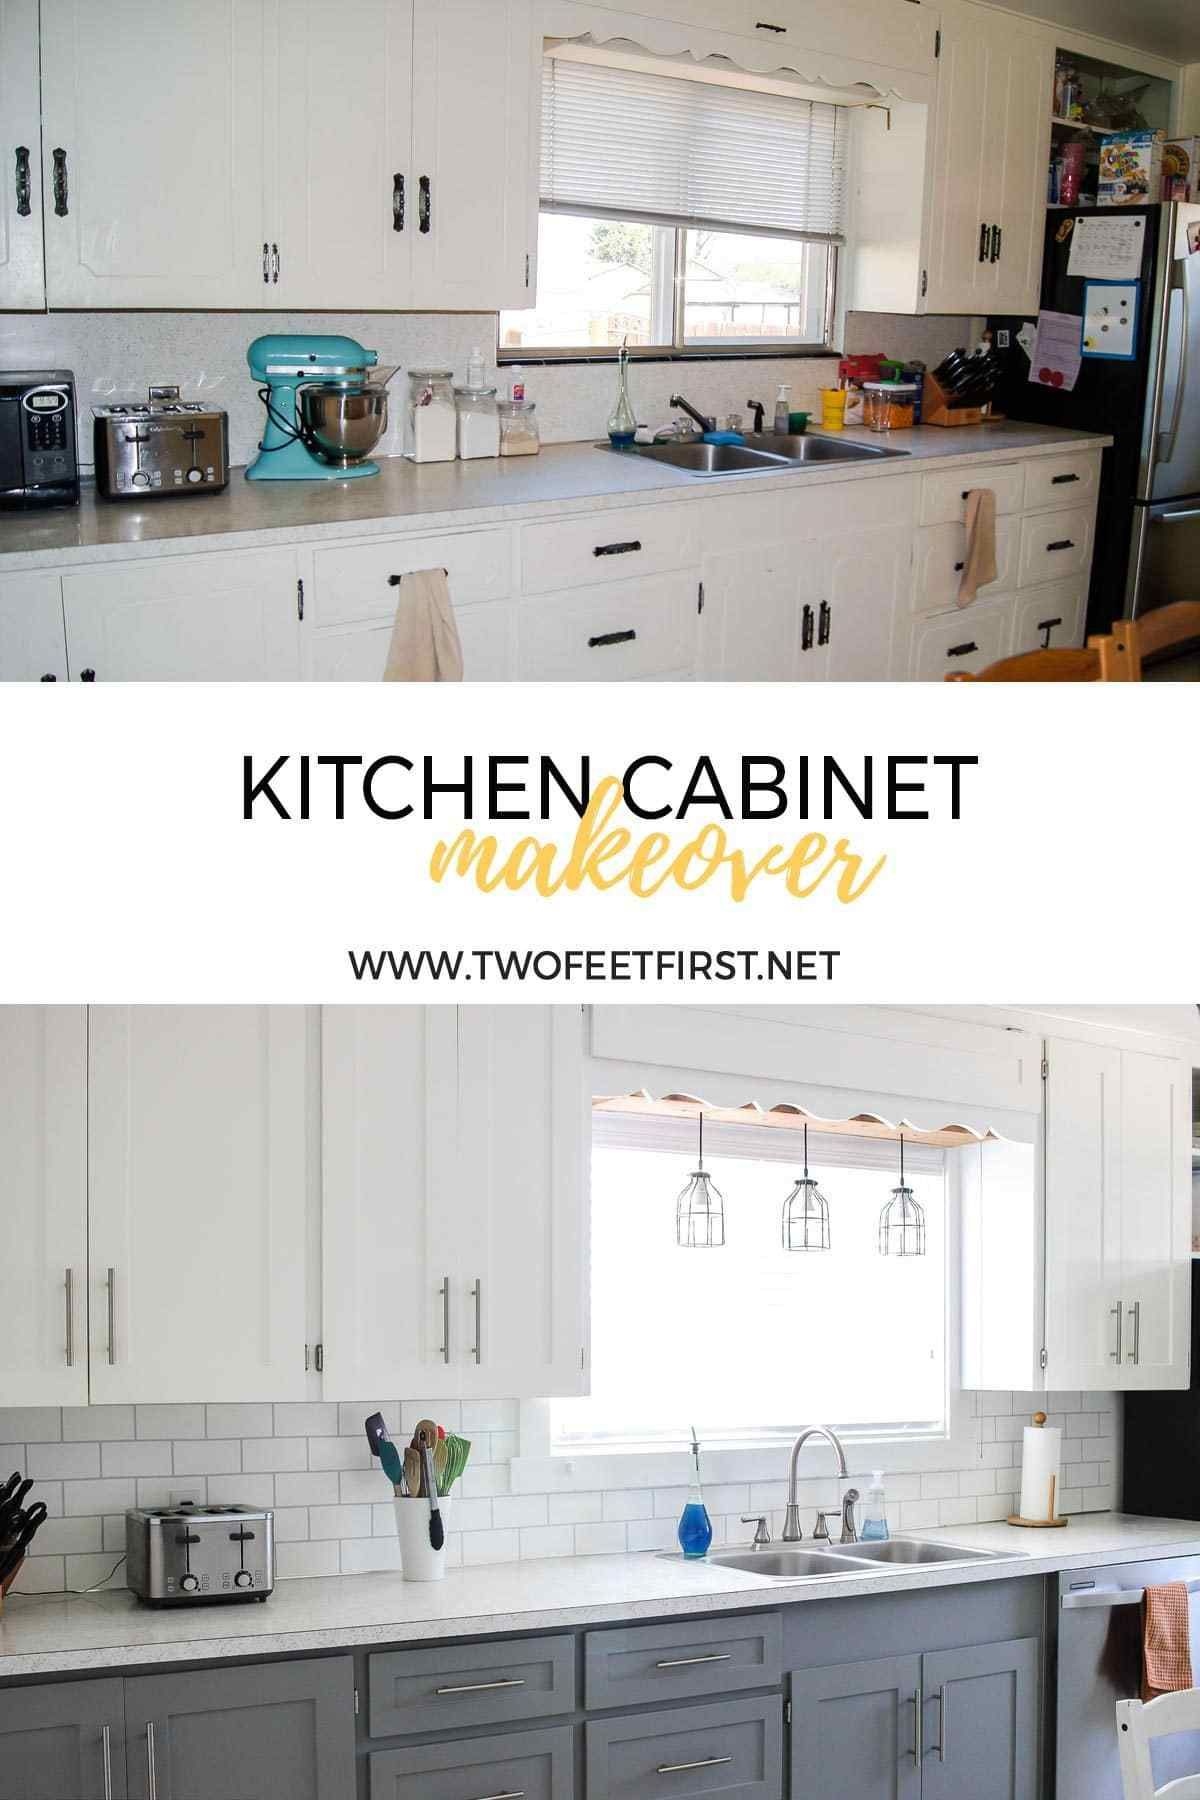 Tips On Painting Kitchen Cabinets With A Paint Sprayer Organization And Clean Refacing Kitchen Cabinets Kitchen Cabinets Spray Kitchen Cabinets